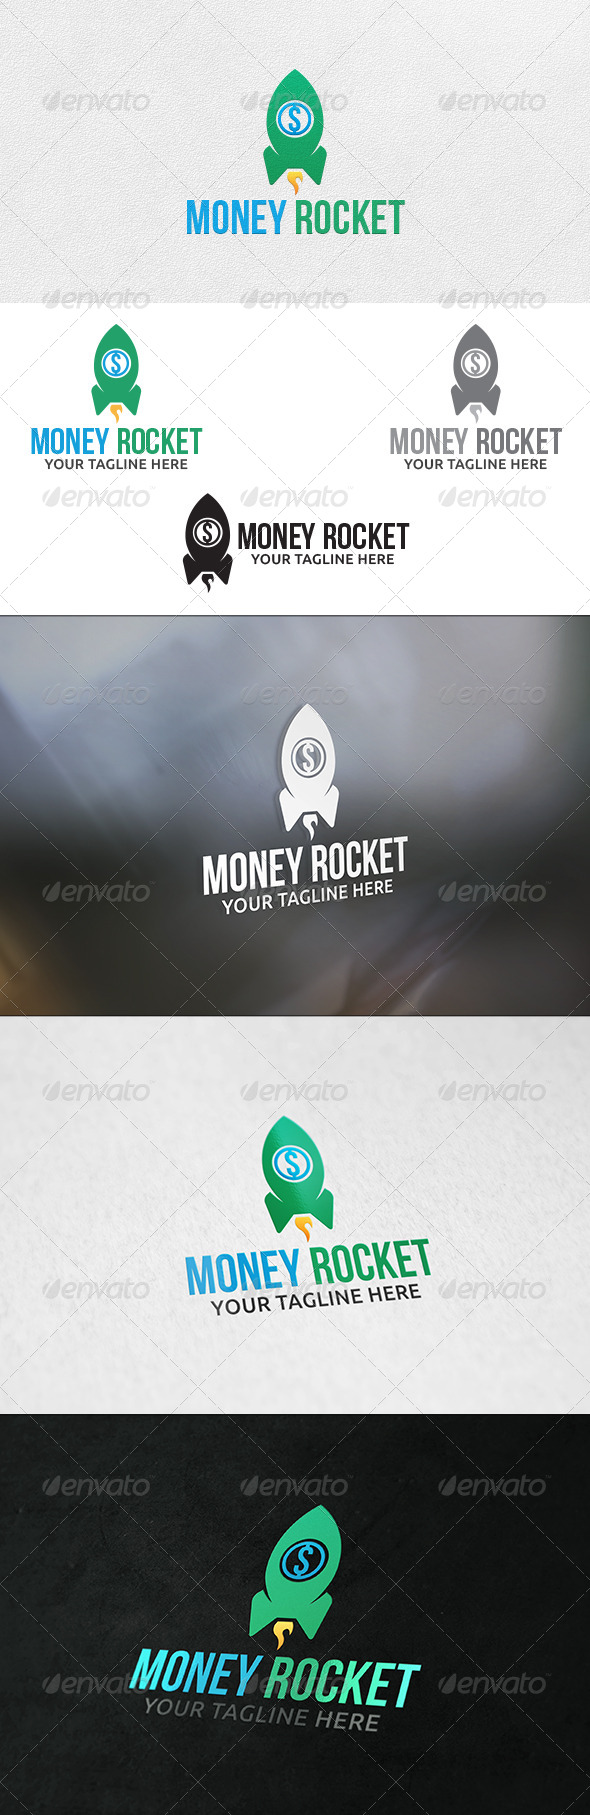 GraphicRiver Money Rocket Logo Template 6295392